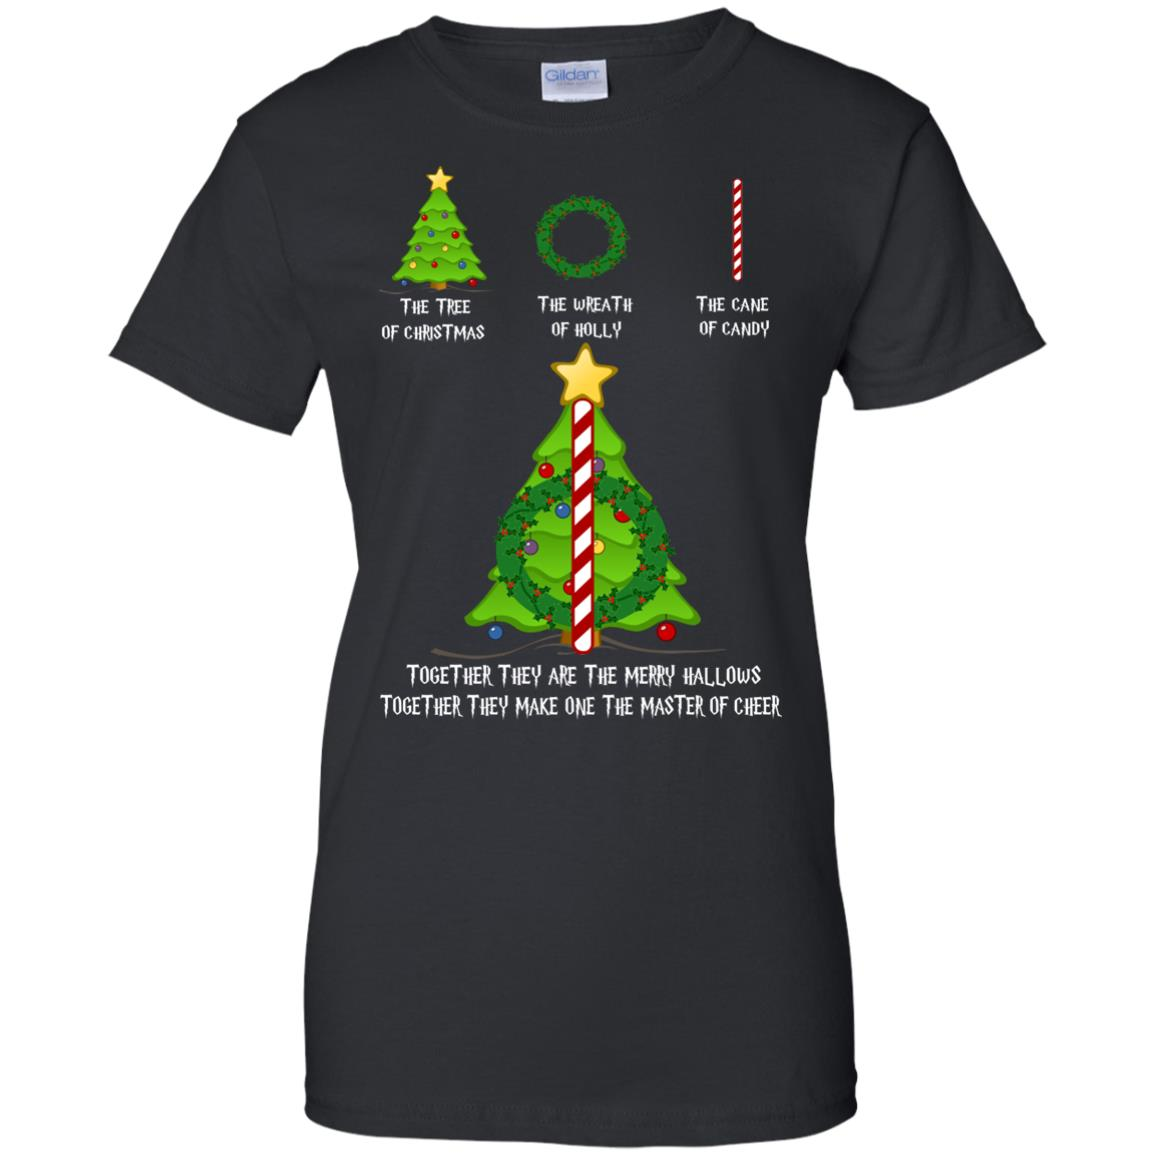 image 379px The Tree Of Christmas The Wreath of Holly The Cane Of Candy T Shirts